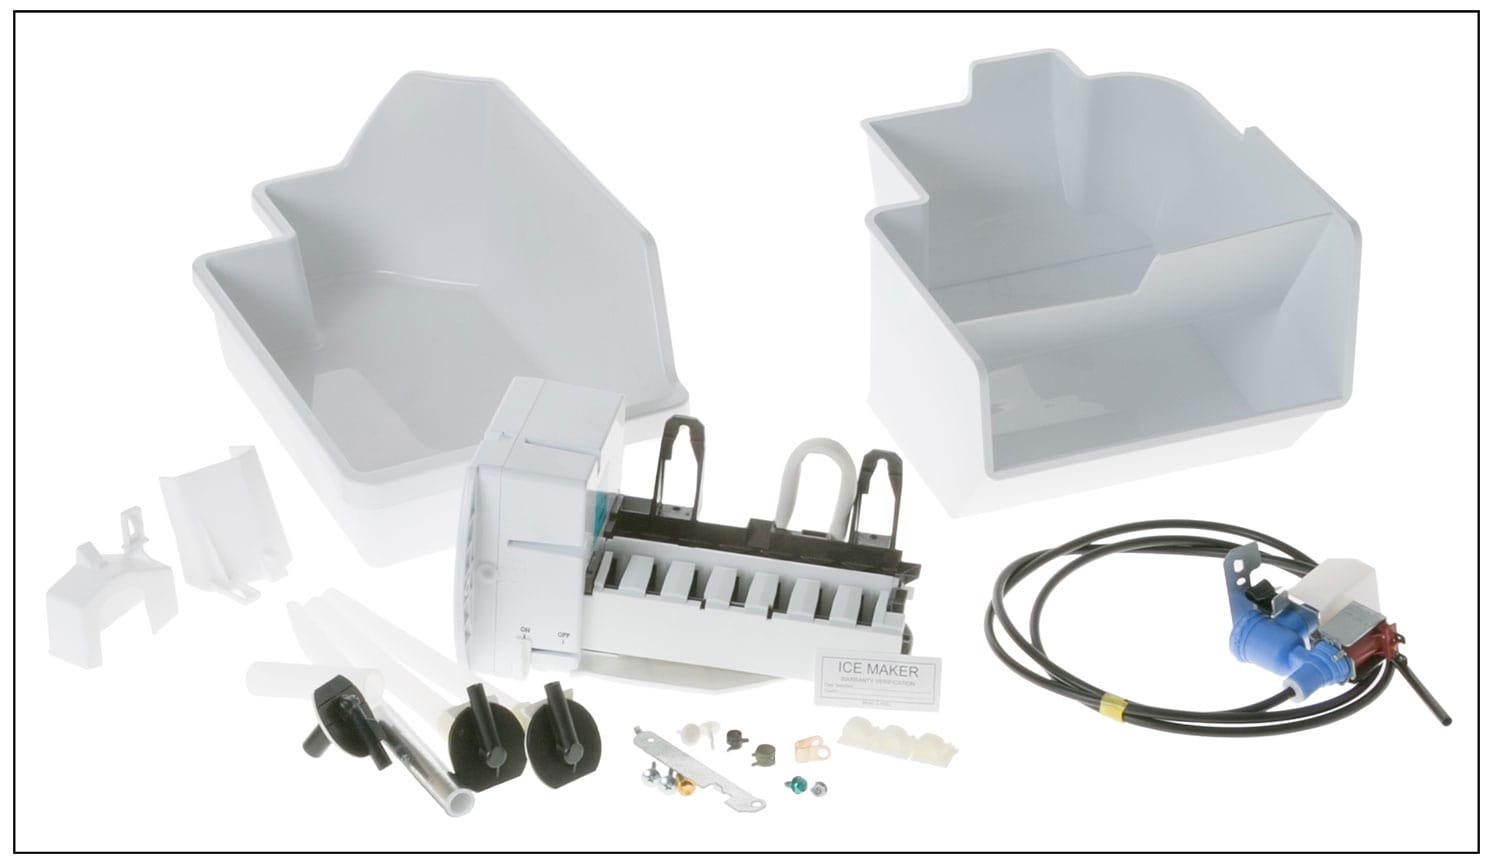 Refrigerators and Freezers - GE Ice Maker Kit IM6D